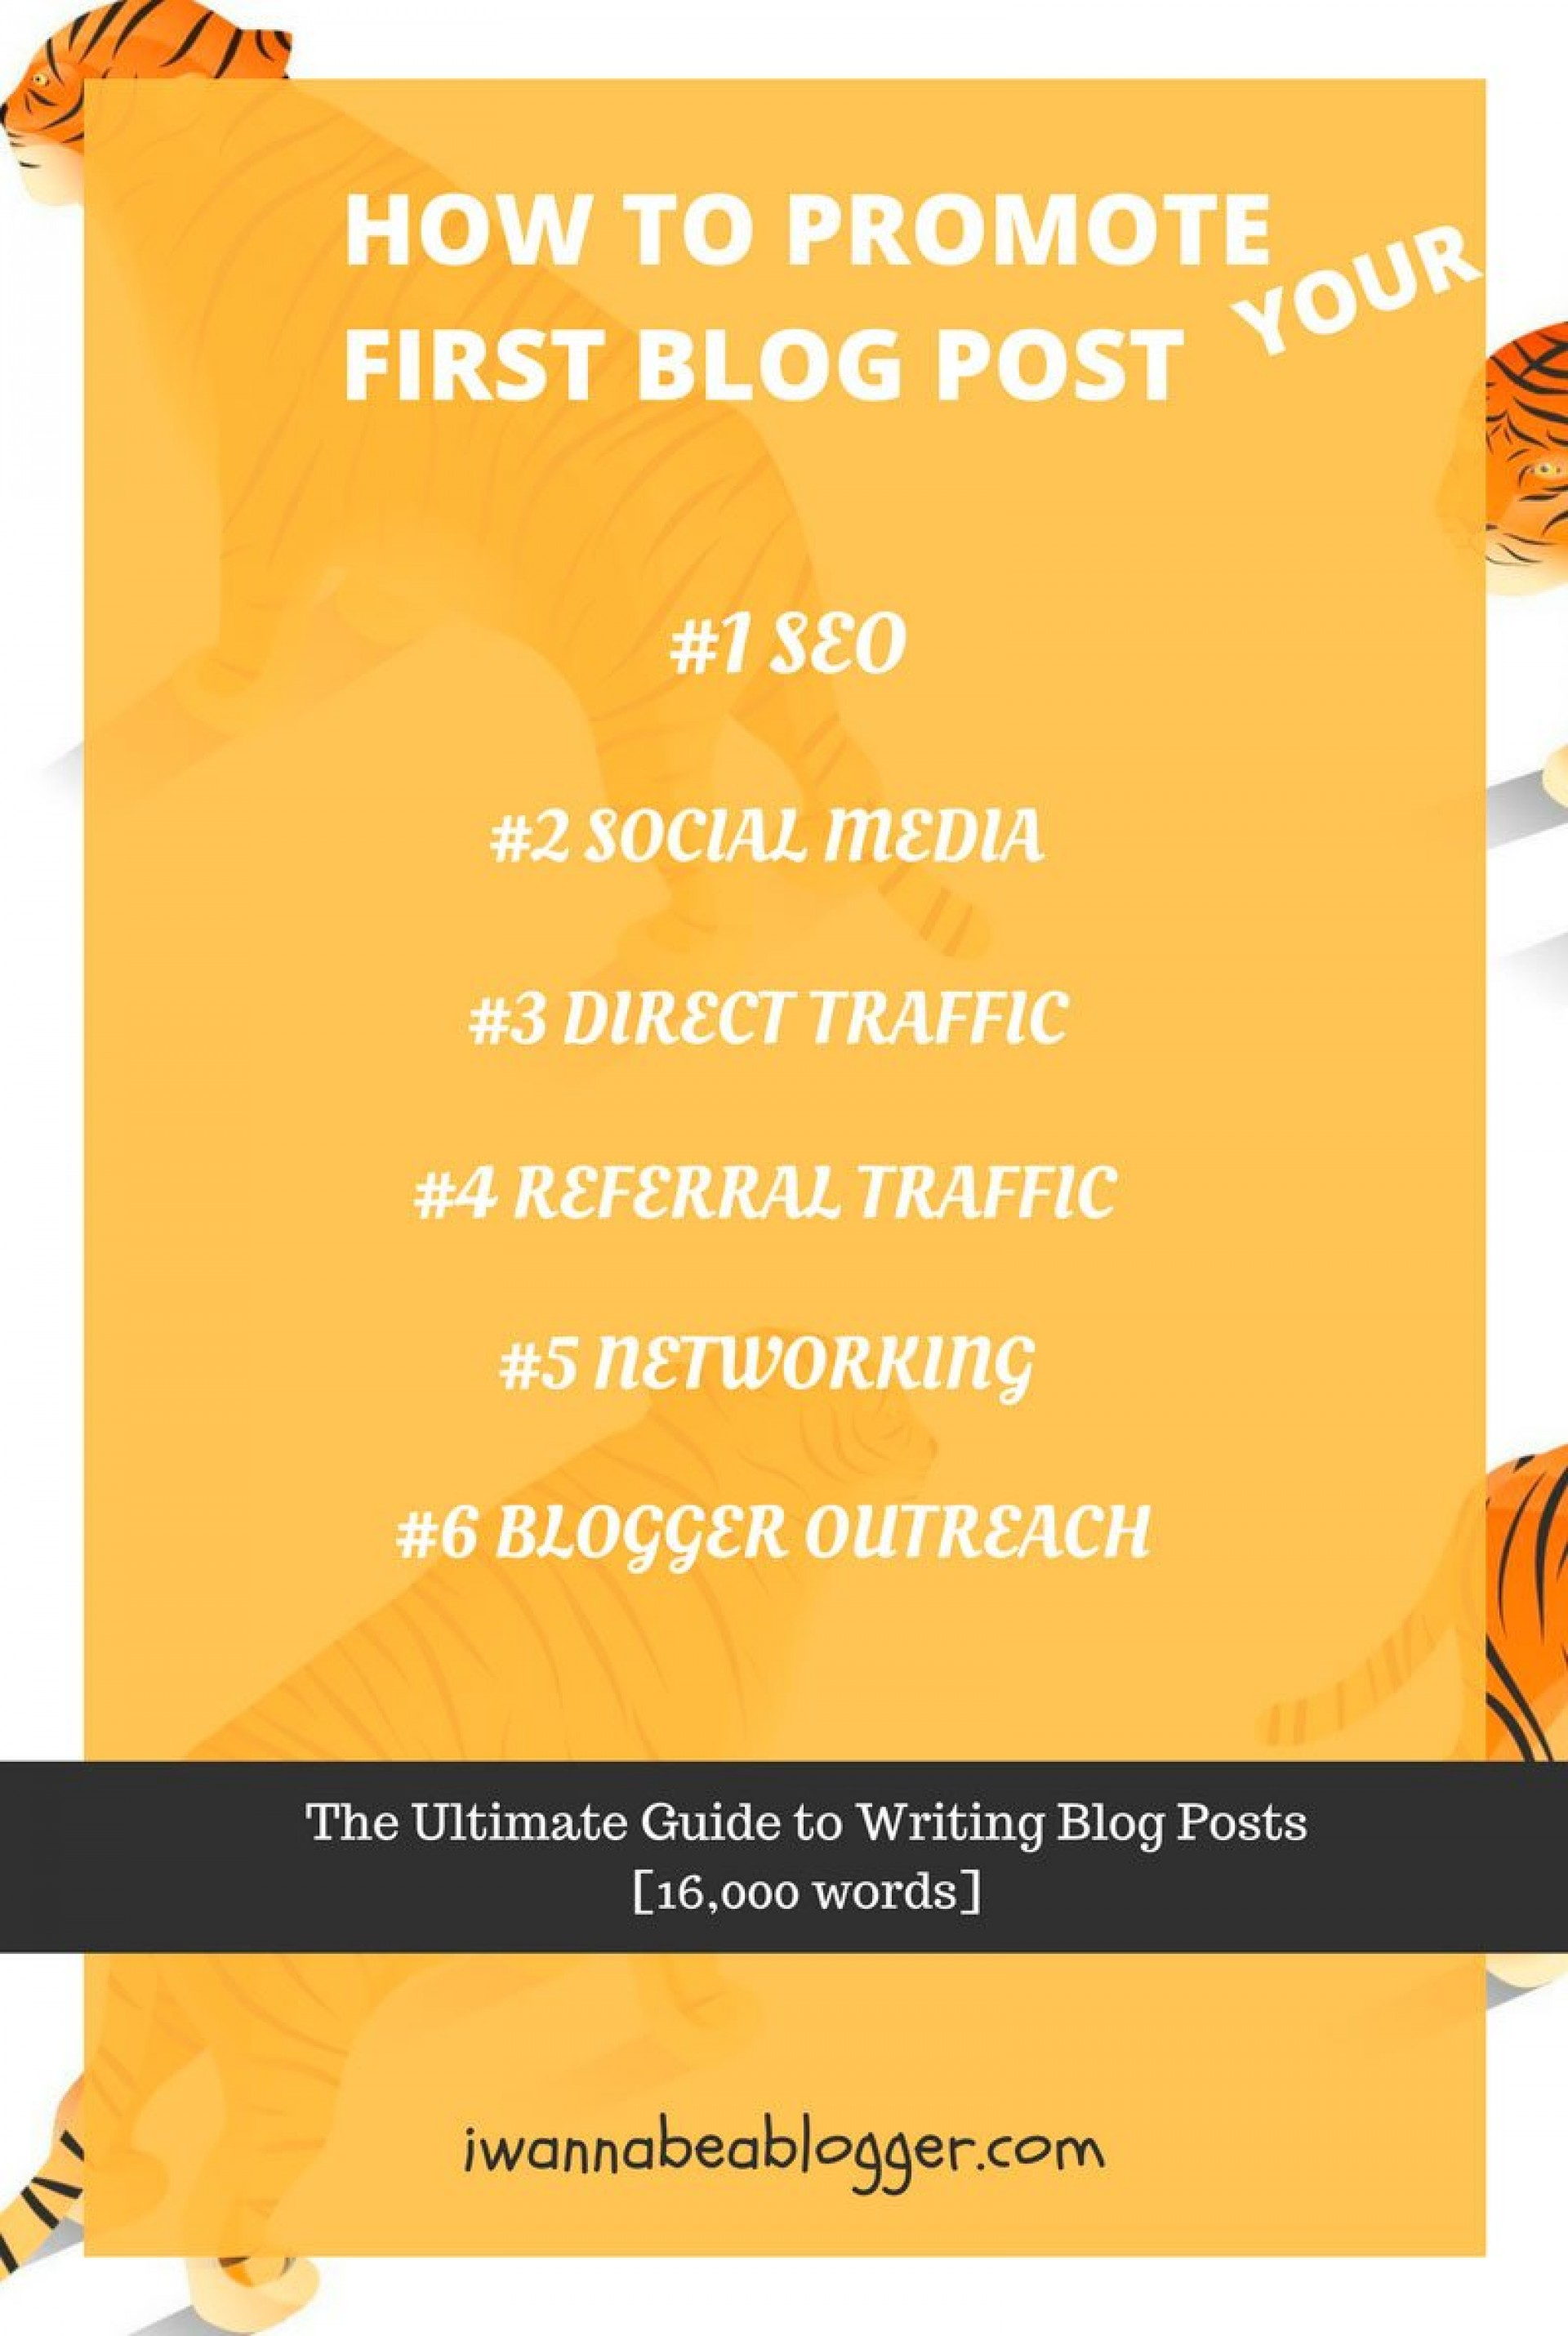 018 Introduce Yourself Essay Sample Words Example How To Promote First Blog Dreaded 100 1920